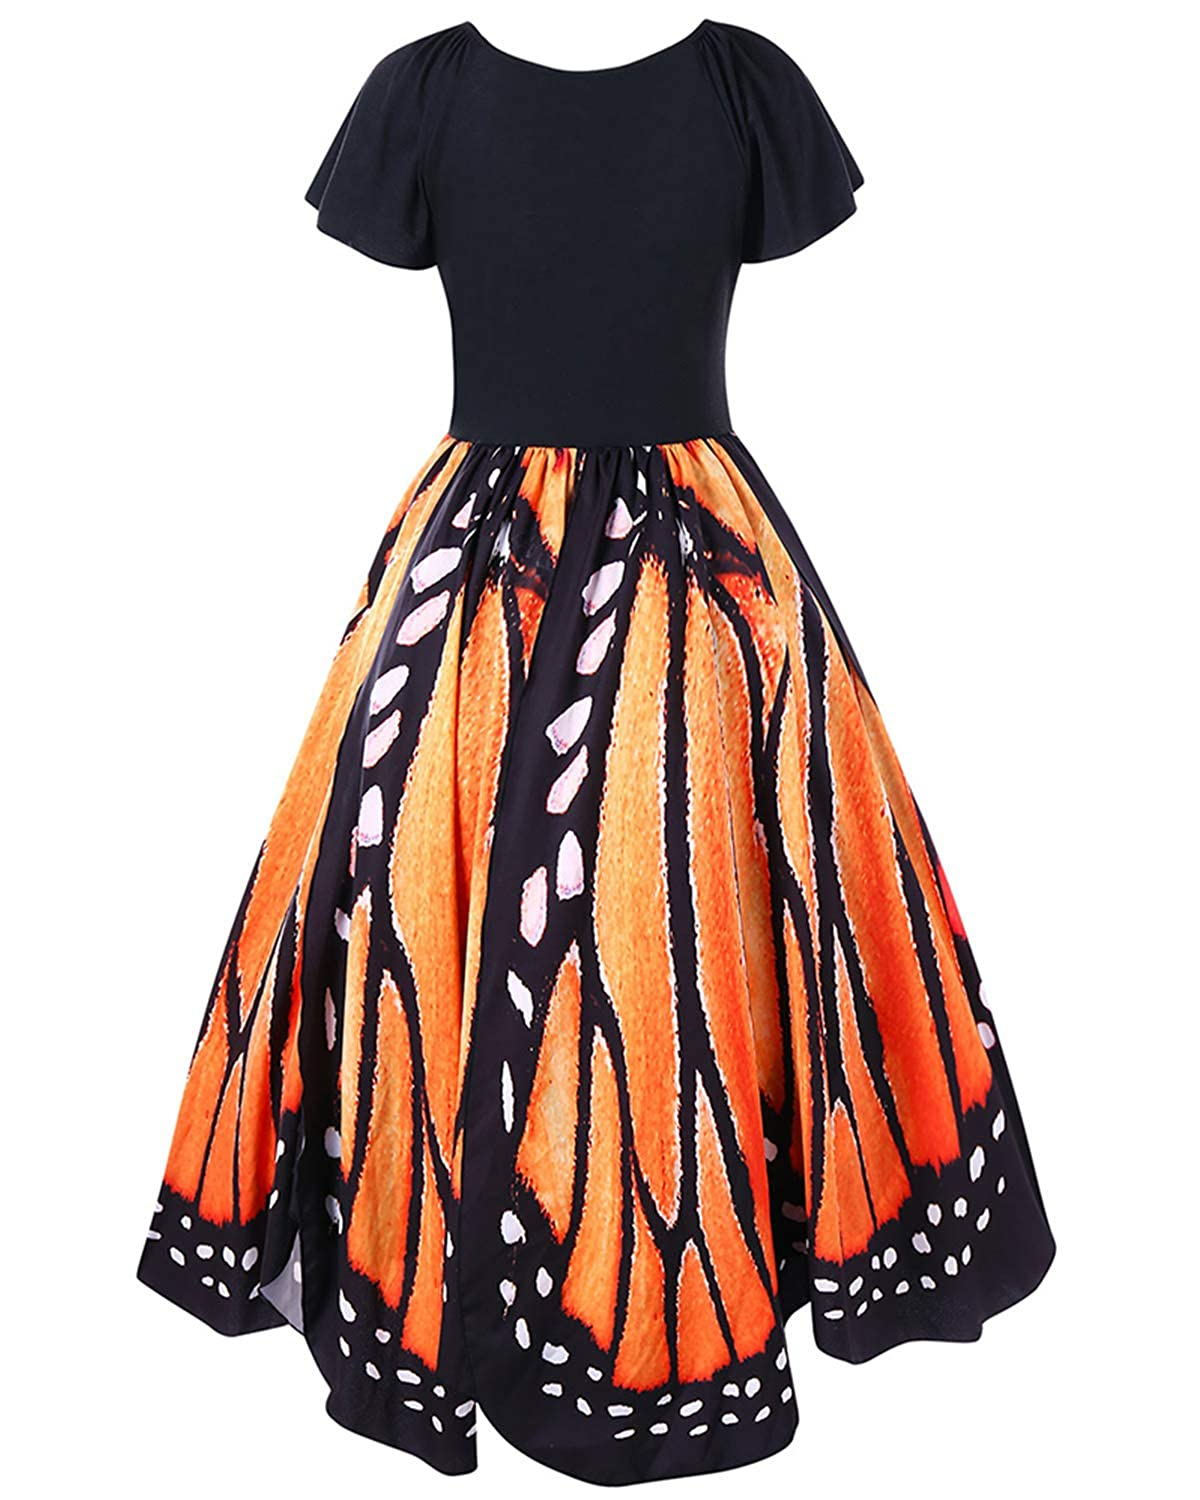 98ccb0b843a GAMISS Women s Vintage Butterfly Print Short Sleeves A-Line Plus Size Dress  XL-5XL at Amazon Women s Clothing store